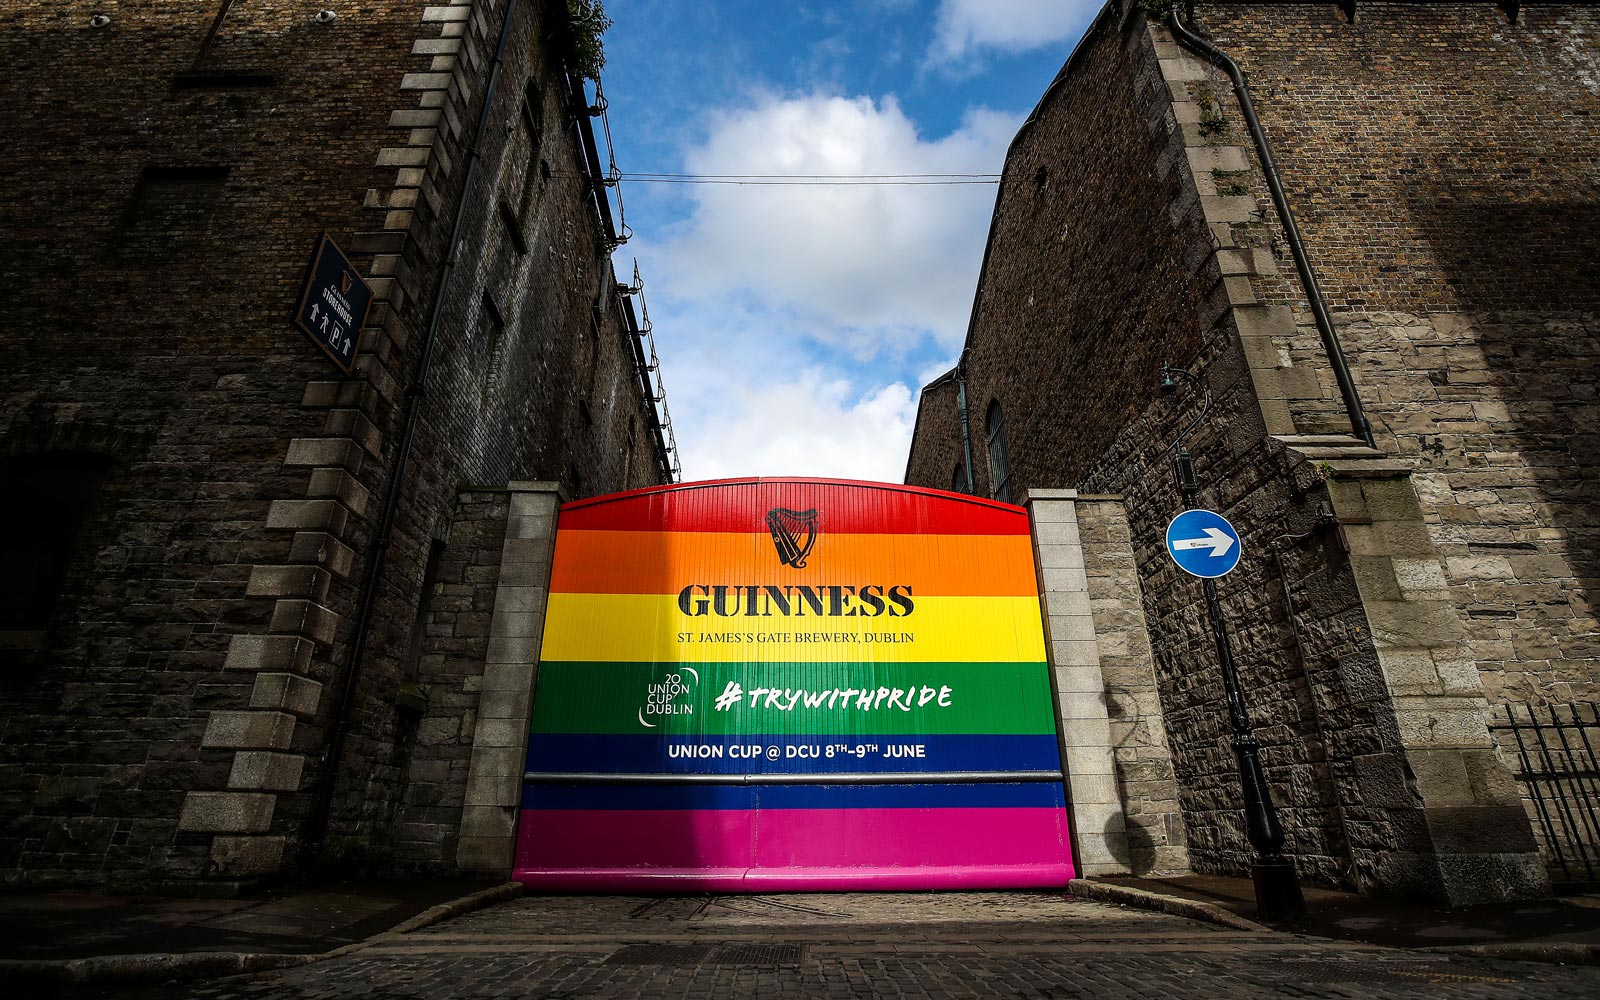 Guinness Is Celebrating Pride and the Union Cup by Painting Its Historic Gates Rainbow Colors